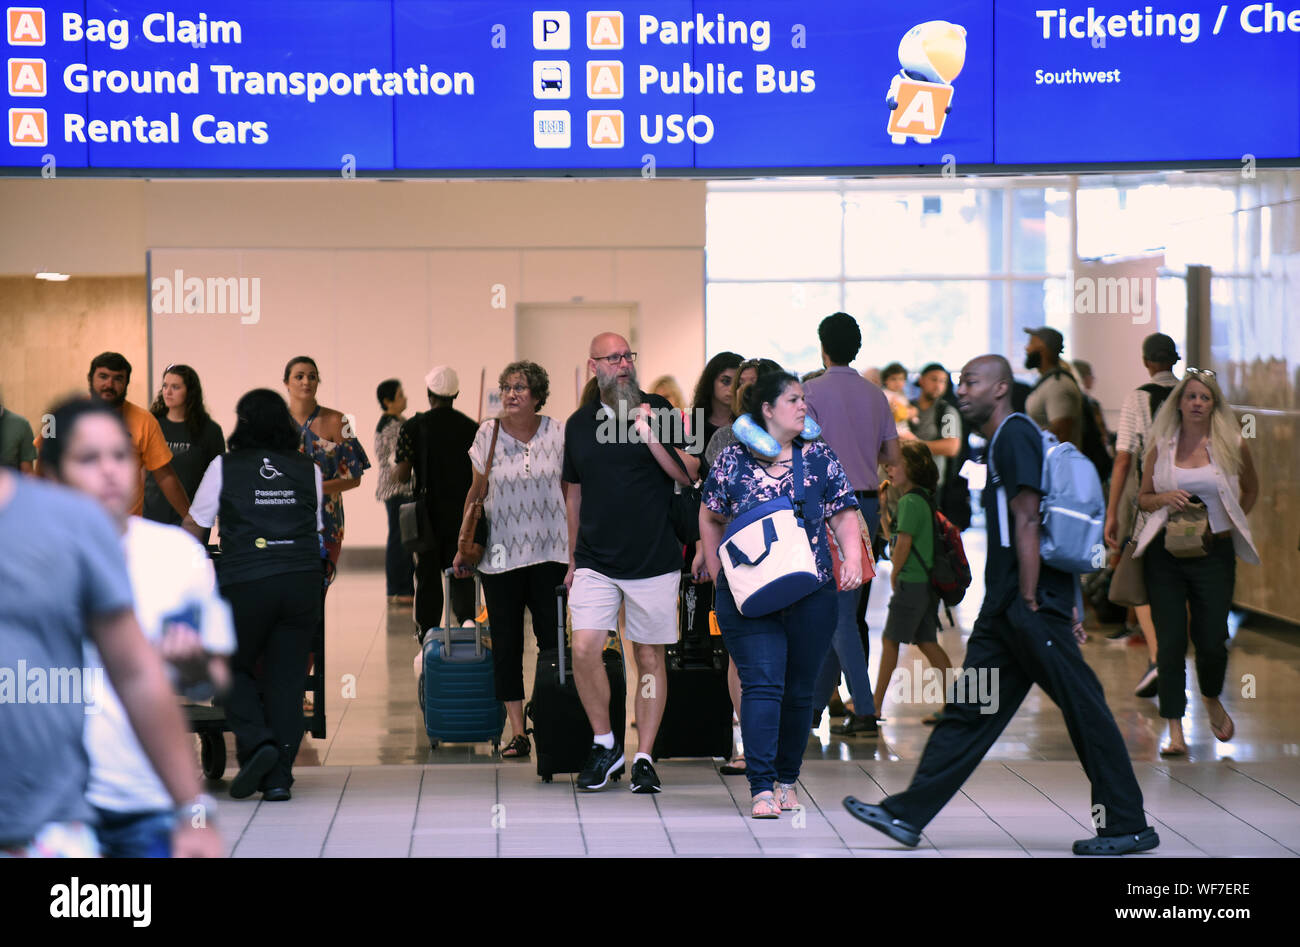 Orlando, Florida, USA. 30th Aug, 2019. Passengers arrive at Orlando International Airport for departing flights ahead of the arrival of Hurricane Dorian, which has intensified to Category 4 and which will threaten parts of the Bahamas and the Southeastern U.S. over Labor Day weekend. Credit: Paul Hennessy/SOPA Images/ZUMA Wire/Alamy Live News Stock Photo